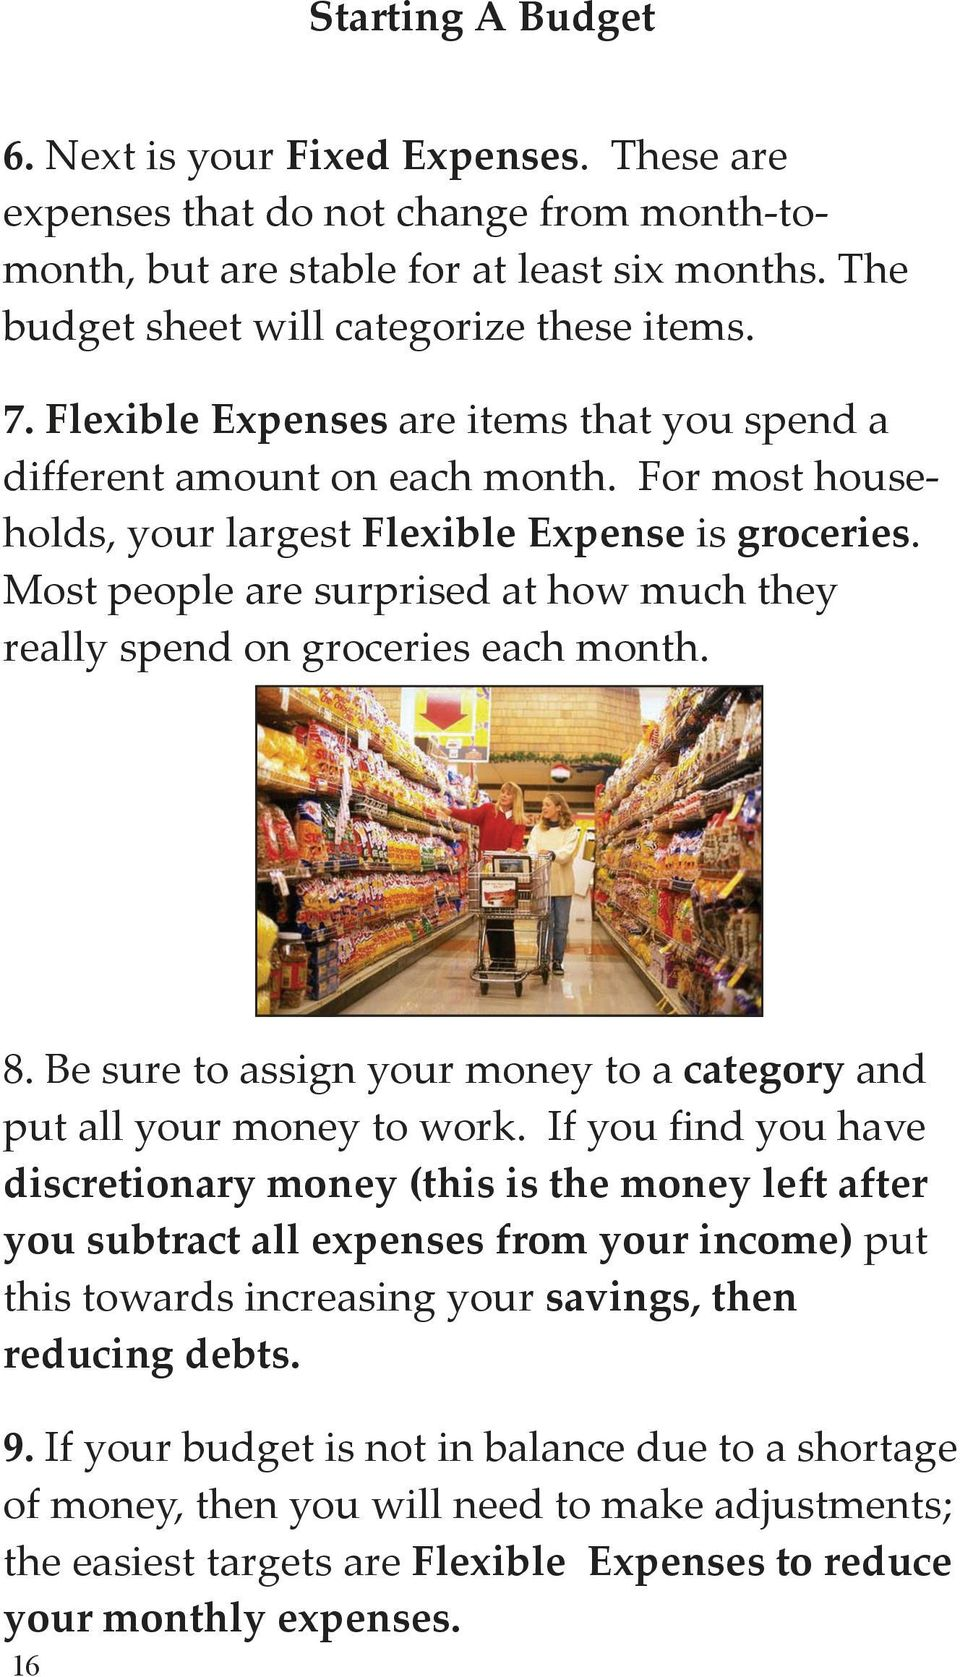 Most people are surprised at how much they really spend on groceries each month. 8. Be sure to assign your money to a category and put all your money to work.